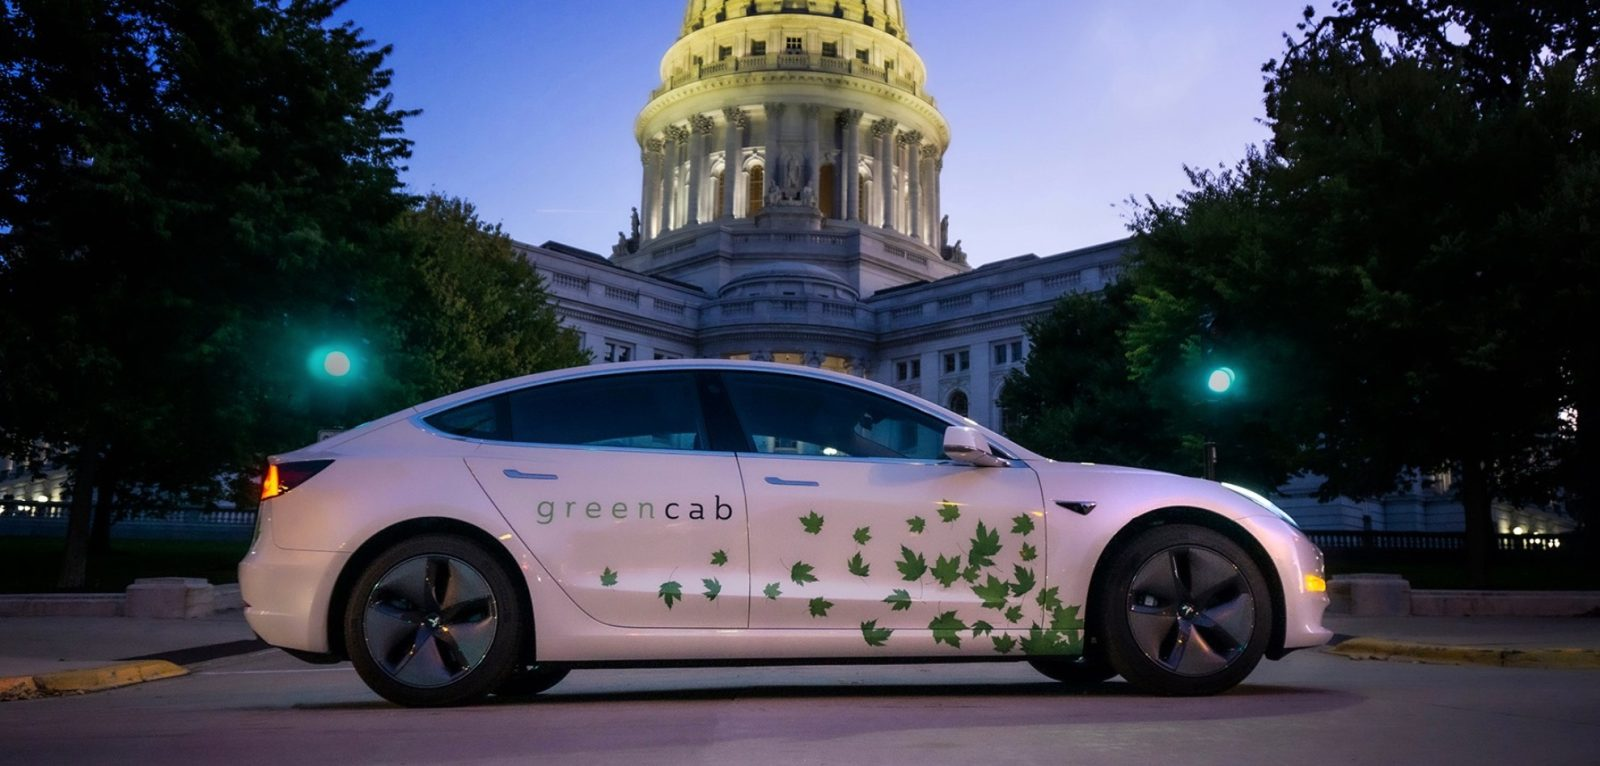 A fleet of 40 Tesla Model 3s is creating an all-electric taxi service in Madison